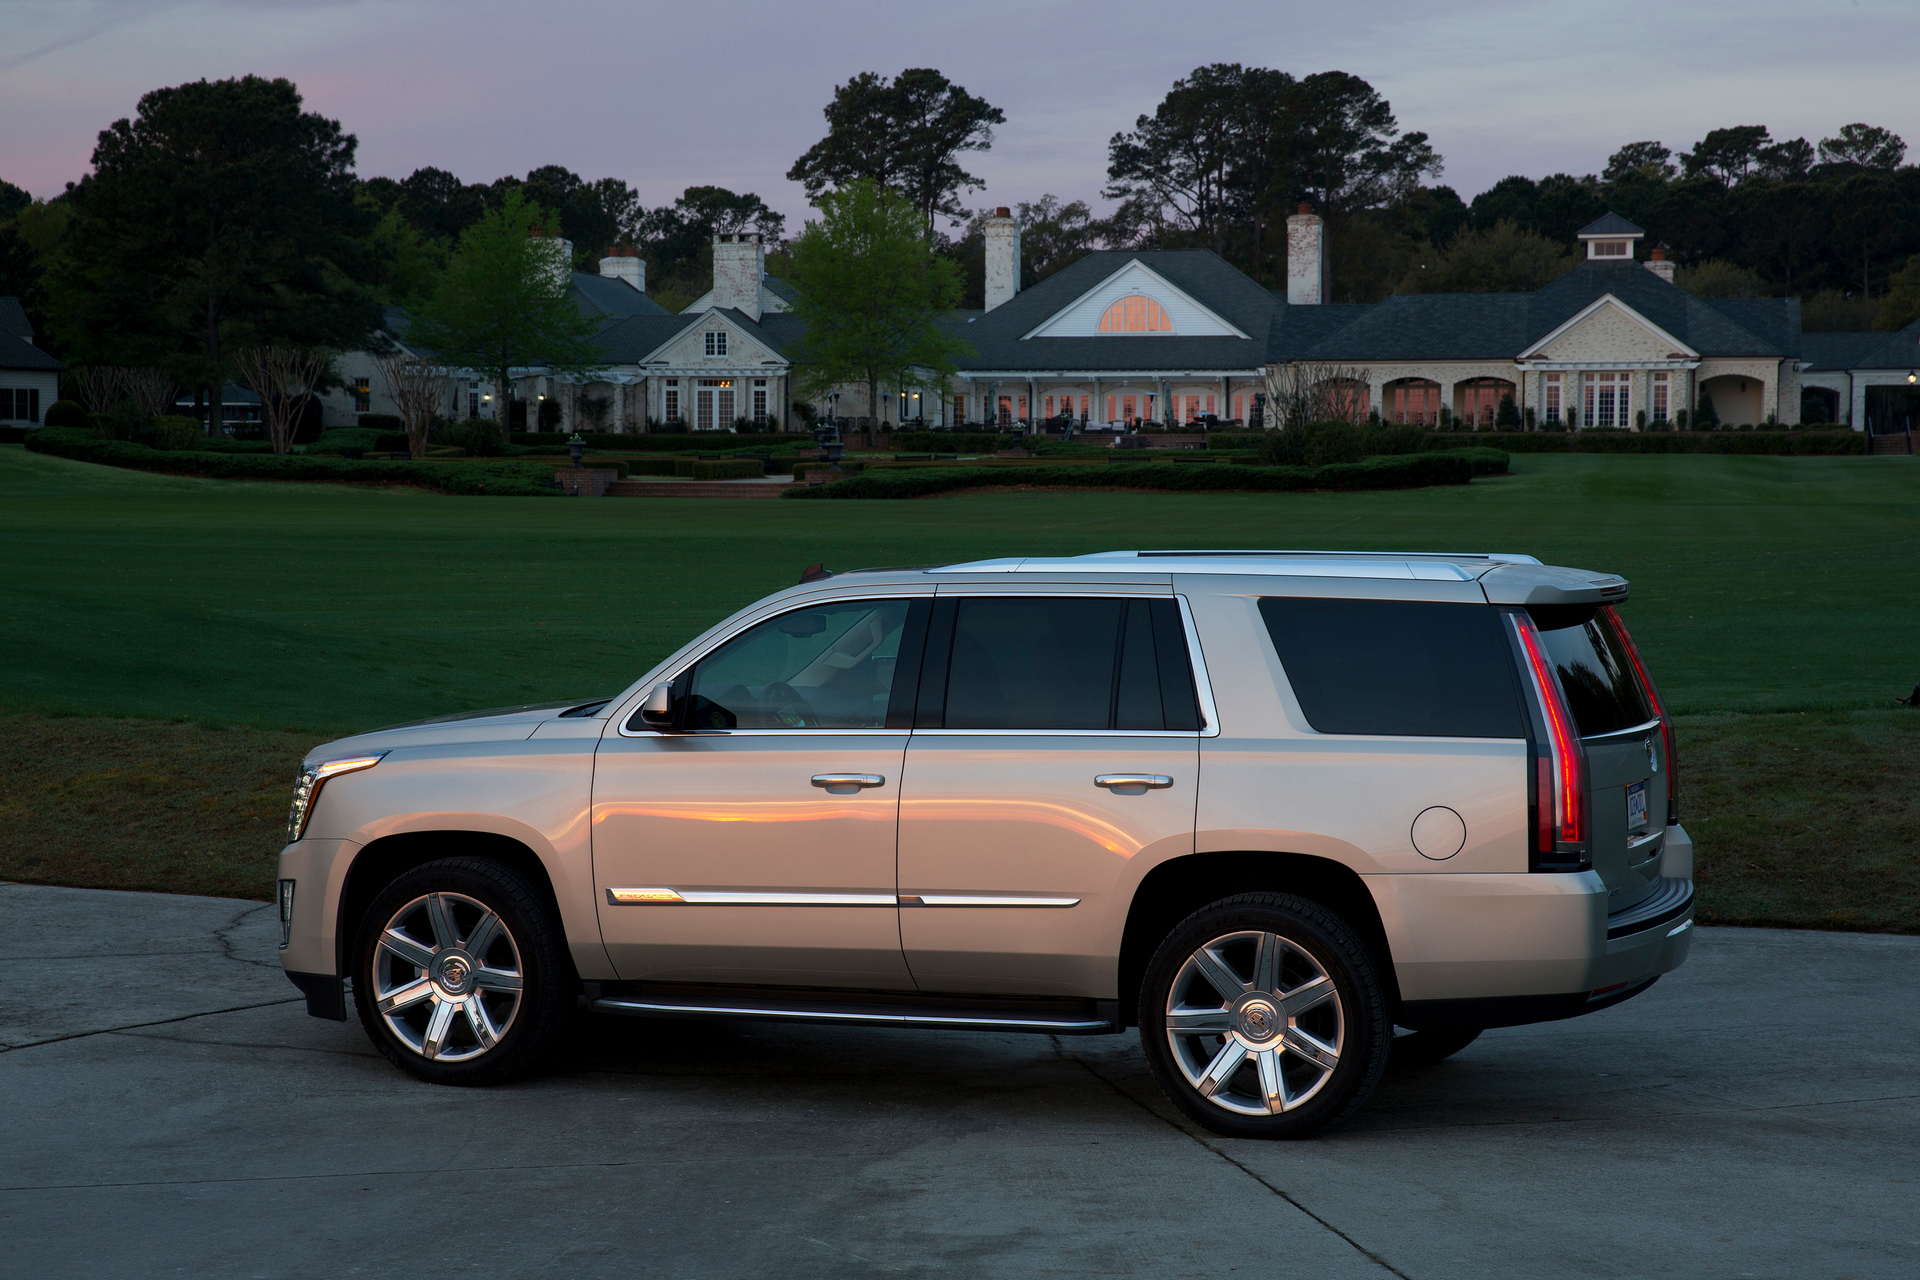 How Much Is A Cadillac Truck Does Escalade Cost